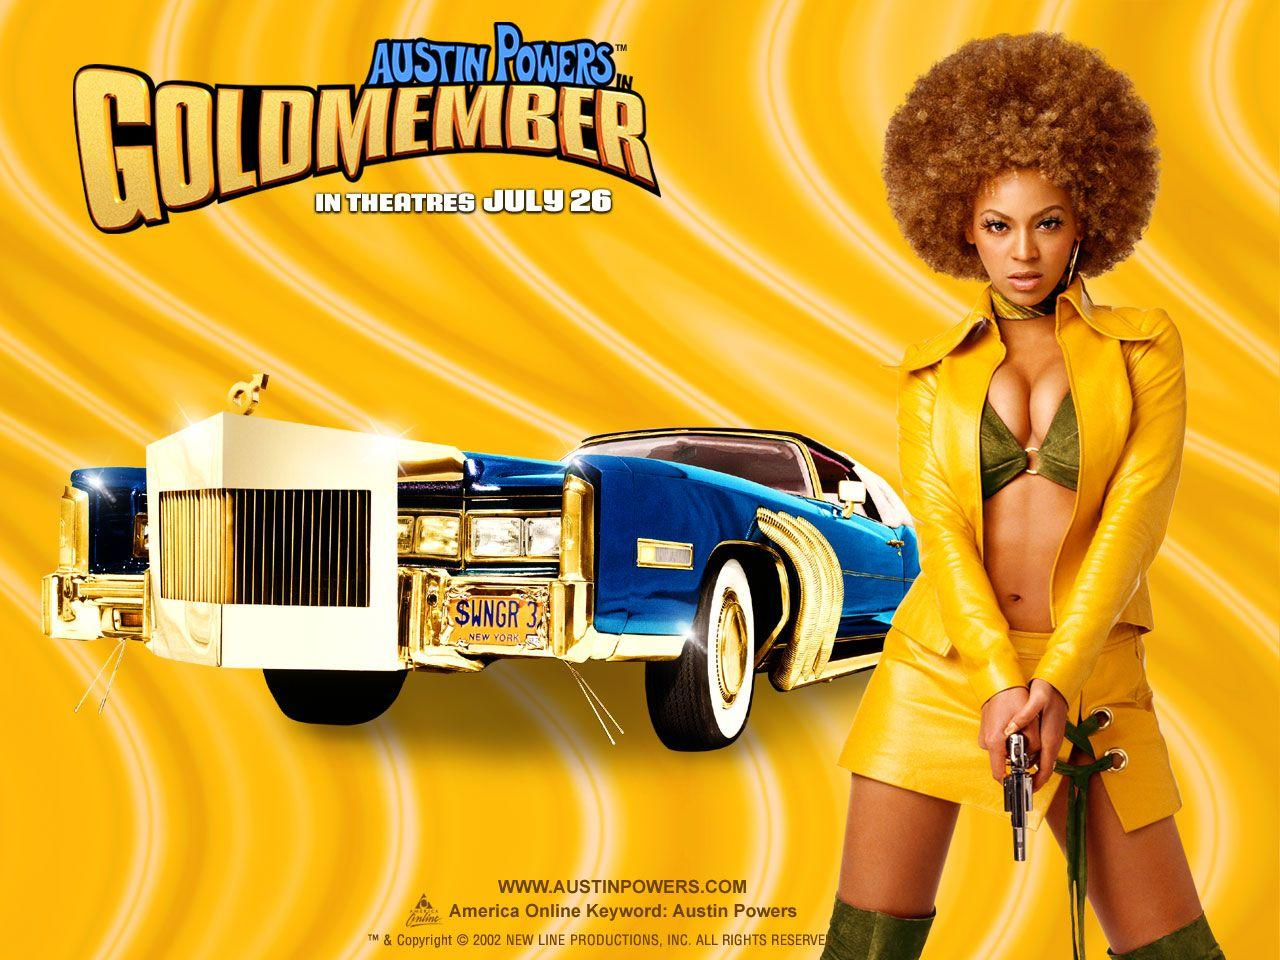 Austin Powers In Goldmember wallpapers, Movie, HQ Austin Powers In